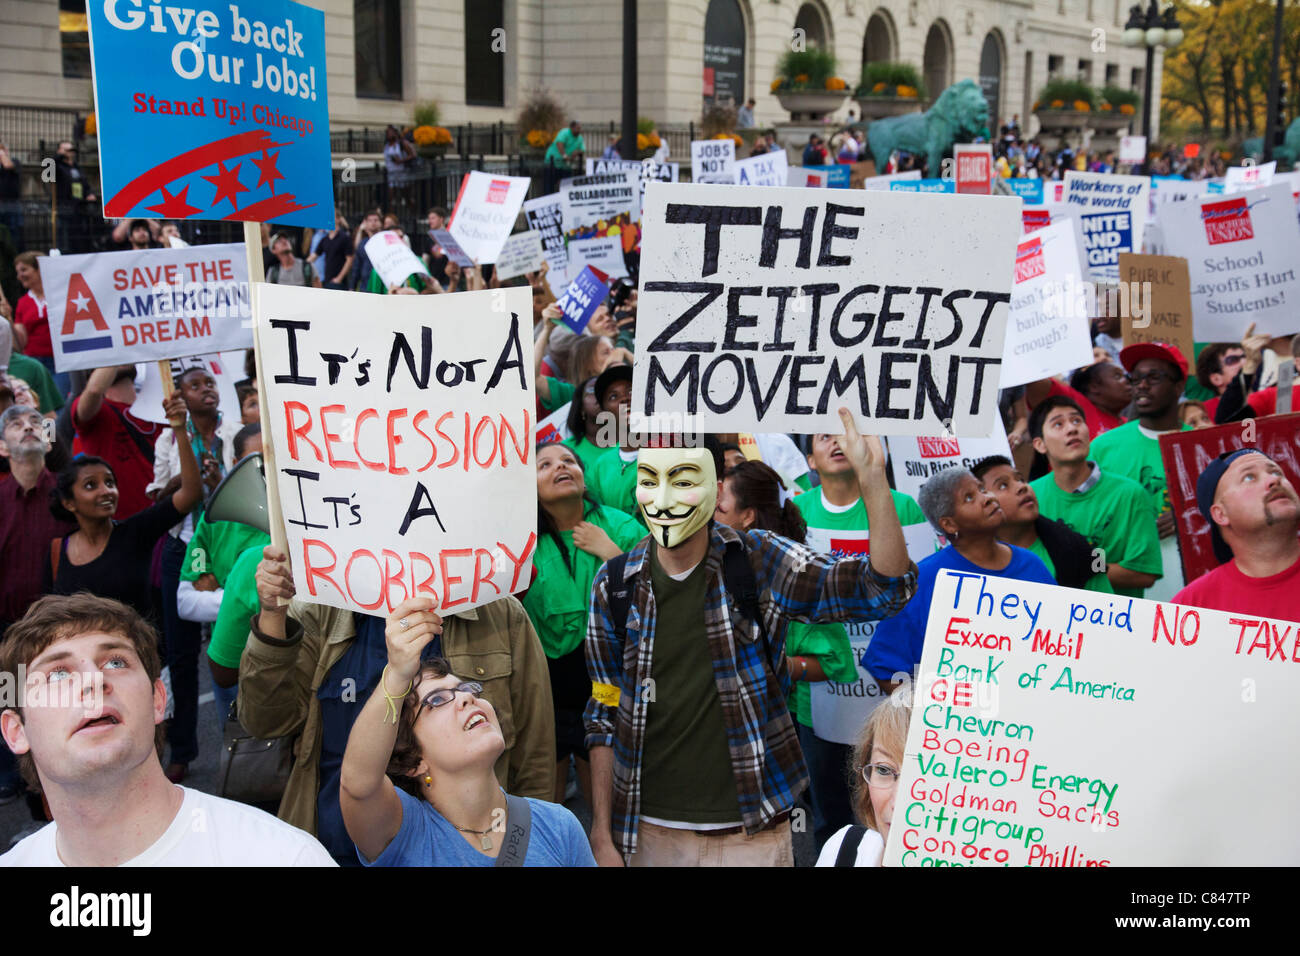 Protesters marching on Michigan Avenue, one wearing Guy Fawkes mask. Occupy Chicago protest. - Stock Image